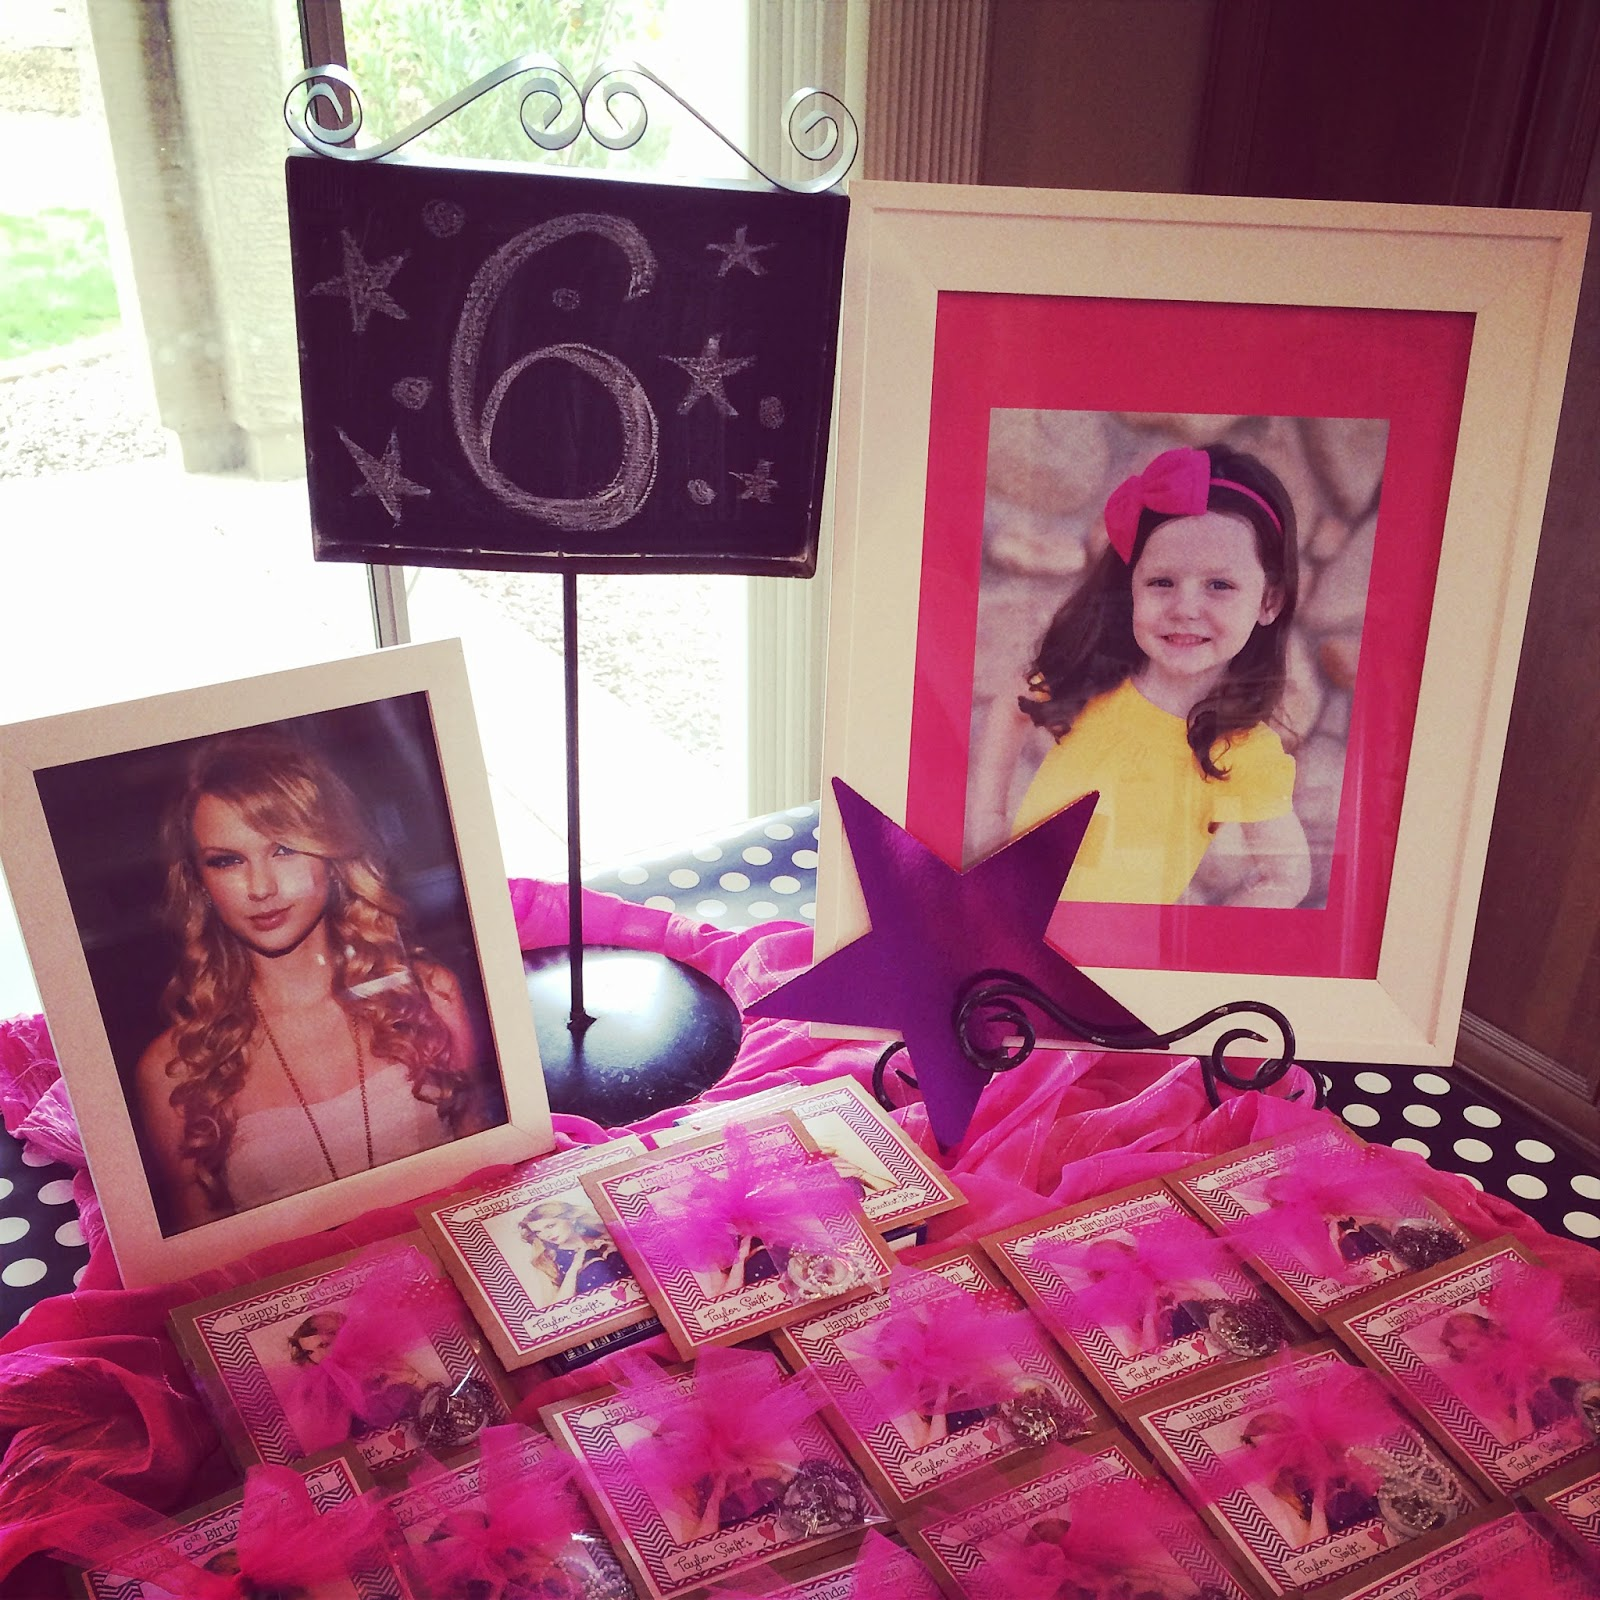 Marci Coombs A Taylor Swift Themed Birthday Bash